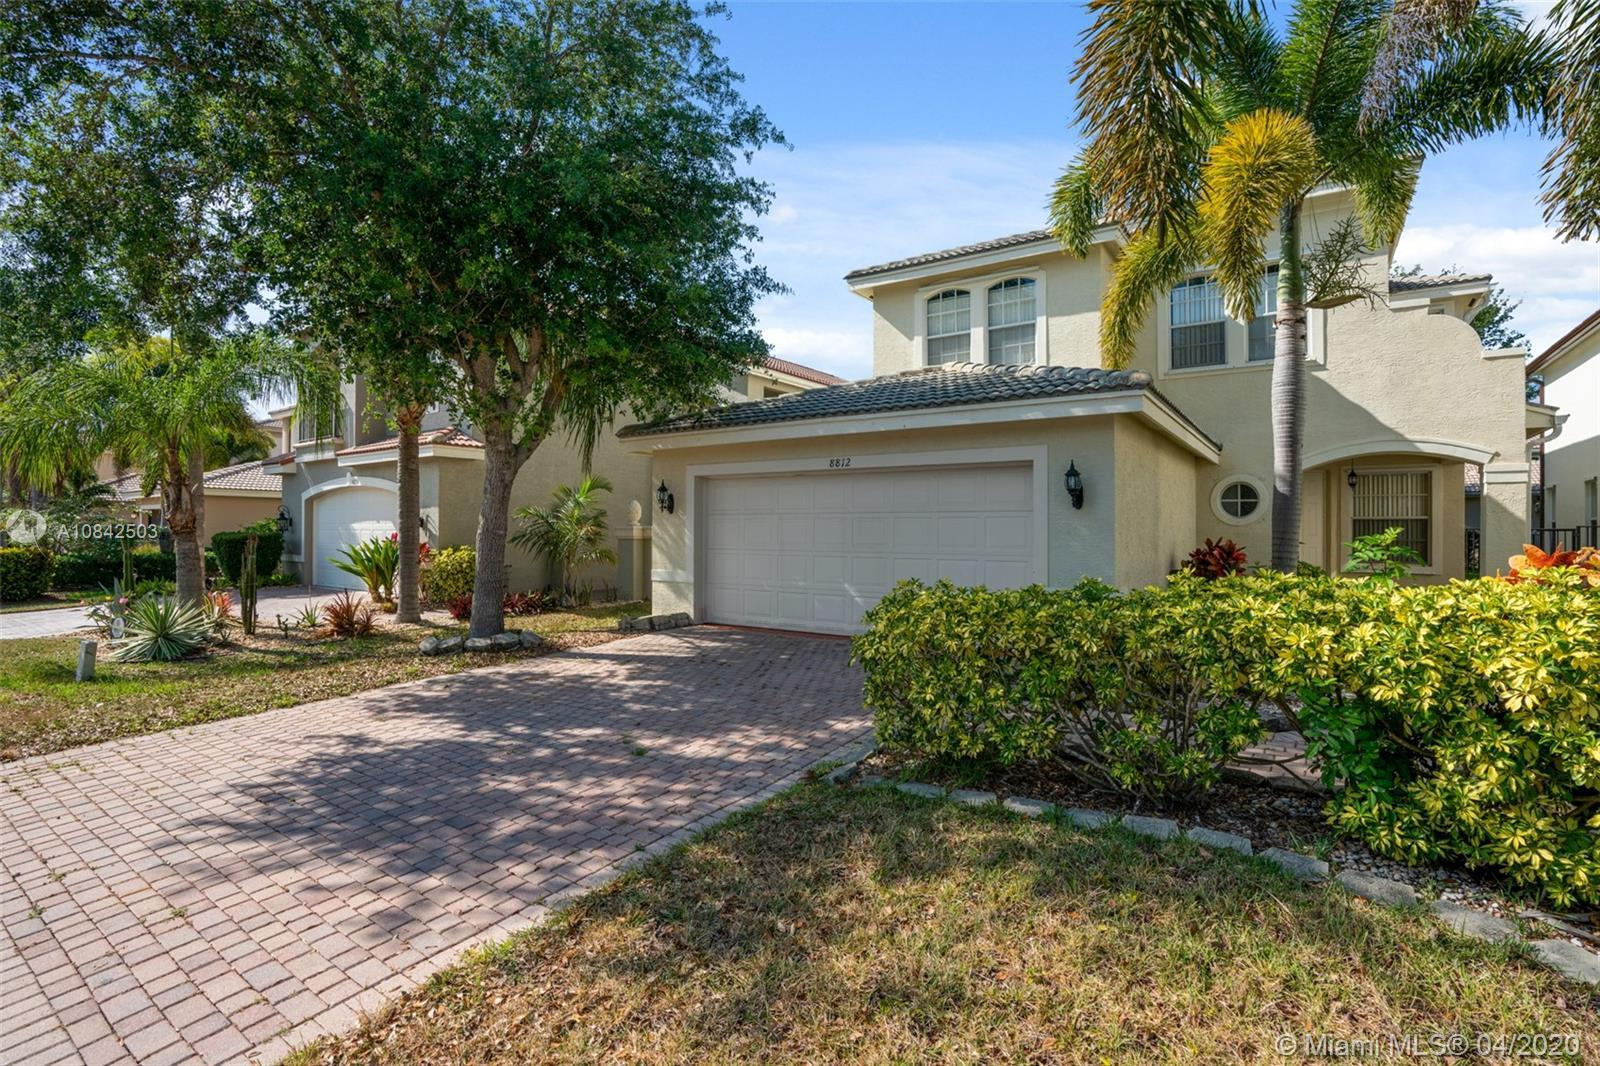 Beautiful 5BR/ 3BA/ 2CGar, Almost 3,000 Sq Ft of Living Space & Tons of Upgrades. Spacious Floor pla